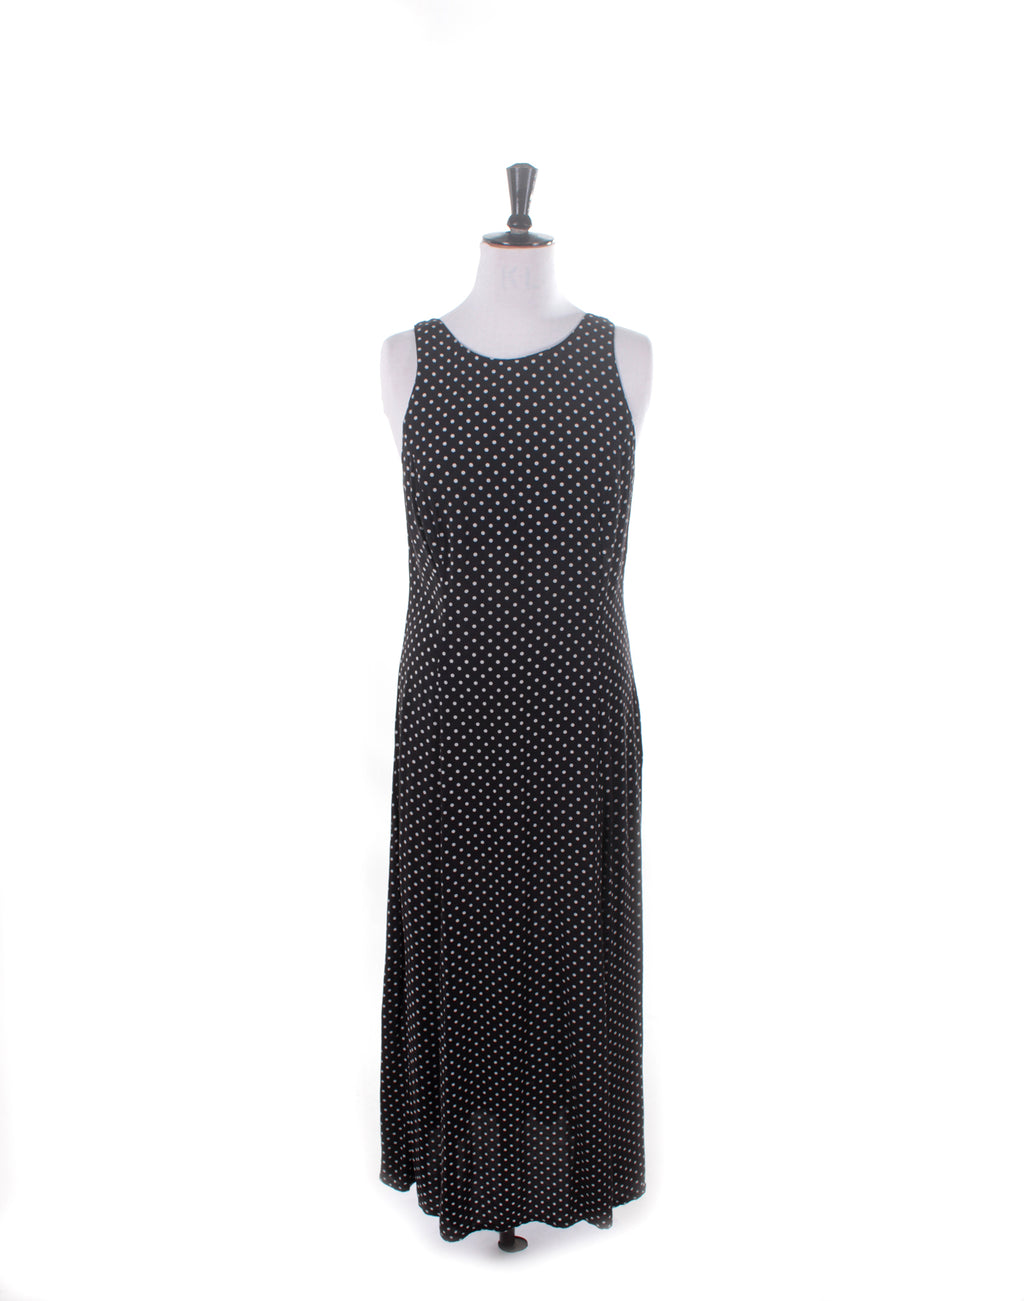 Vintage 90's Equipment Black Polka Dot Maxi Dress